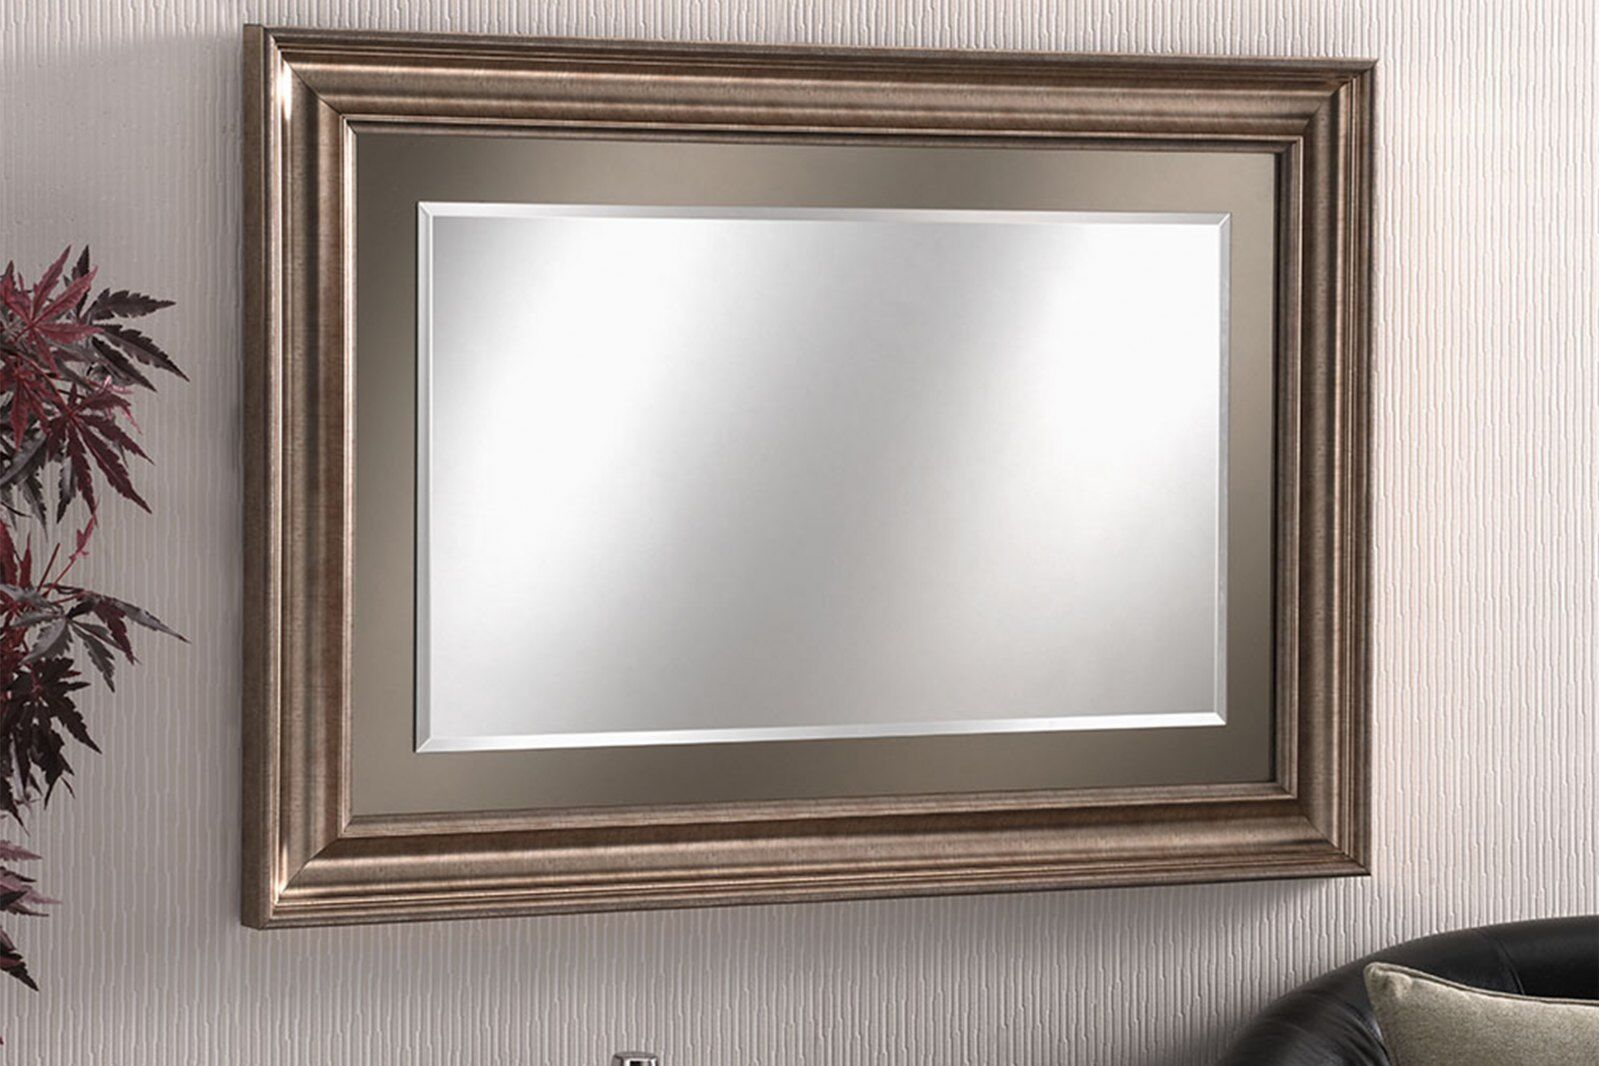 Fairmont Rectangular Bronze Wall Mirror 118 x 92cm / 1